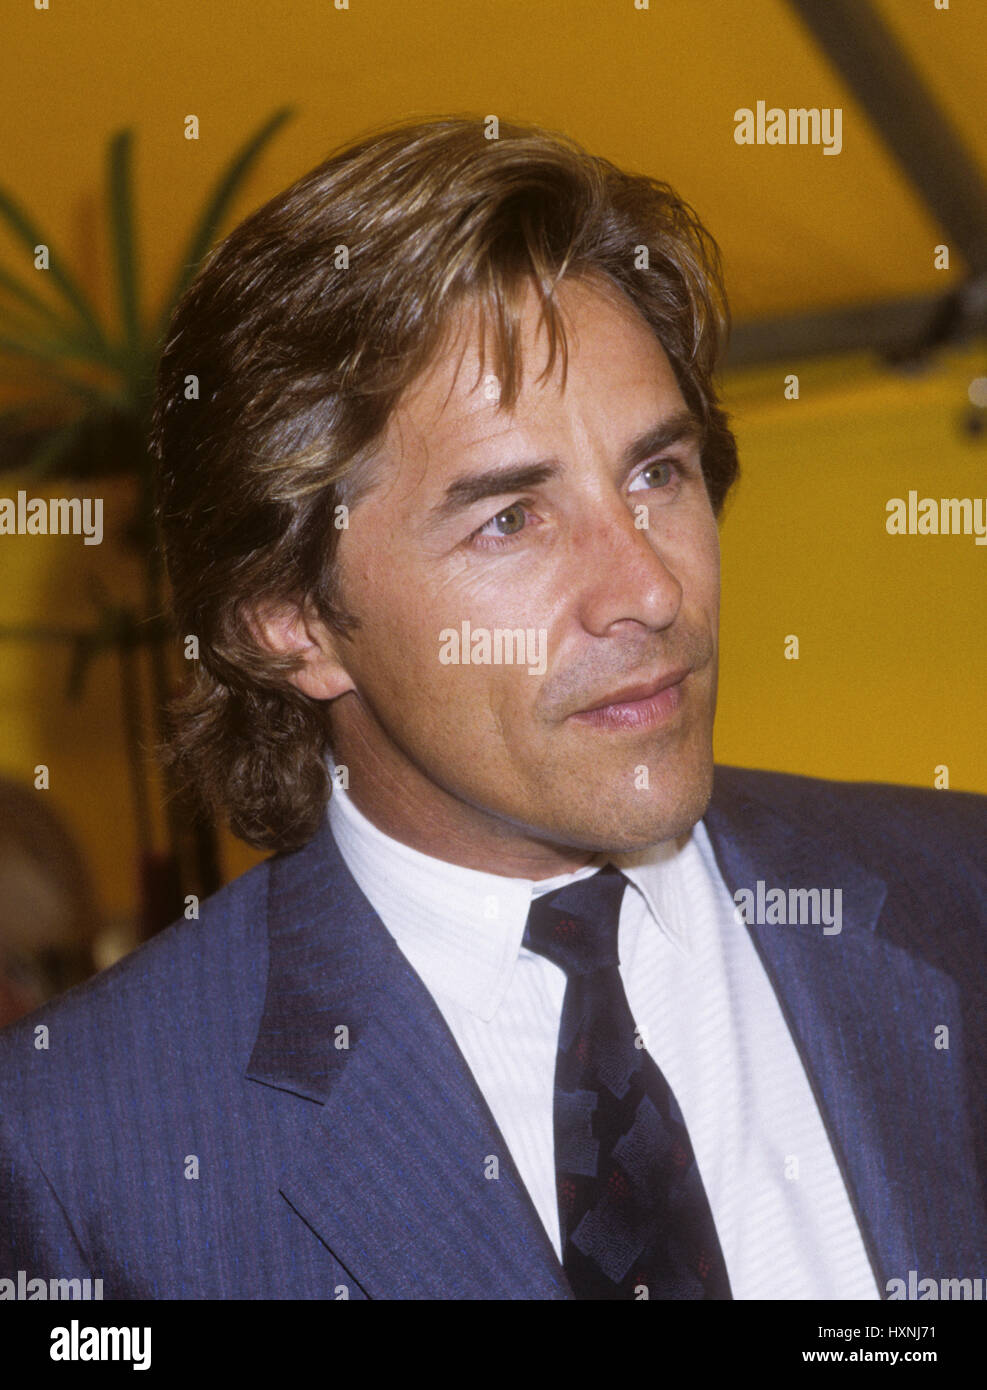 don johnson acteur am ricain mieux connu pour son r le de sonny crocket dans miami vice banque. Black Bedroom Furniture Sets. Home Design Ideas